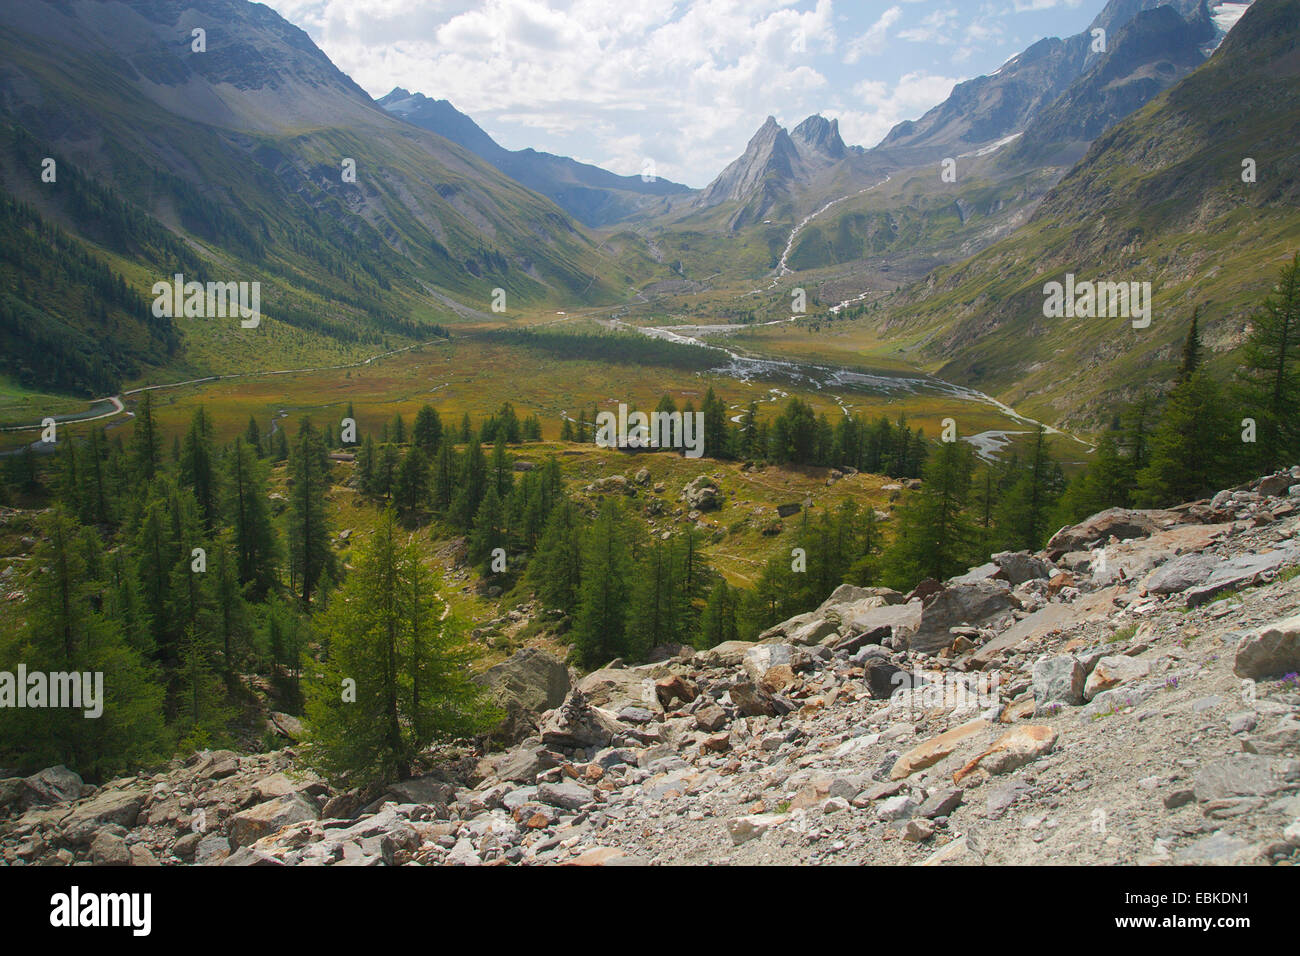 Val Veny, view from Moraine of Glacier du Miage, Italy - Stock Image